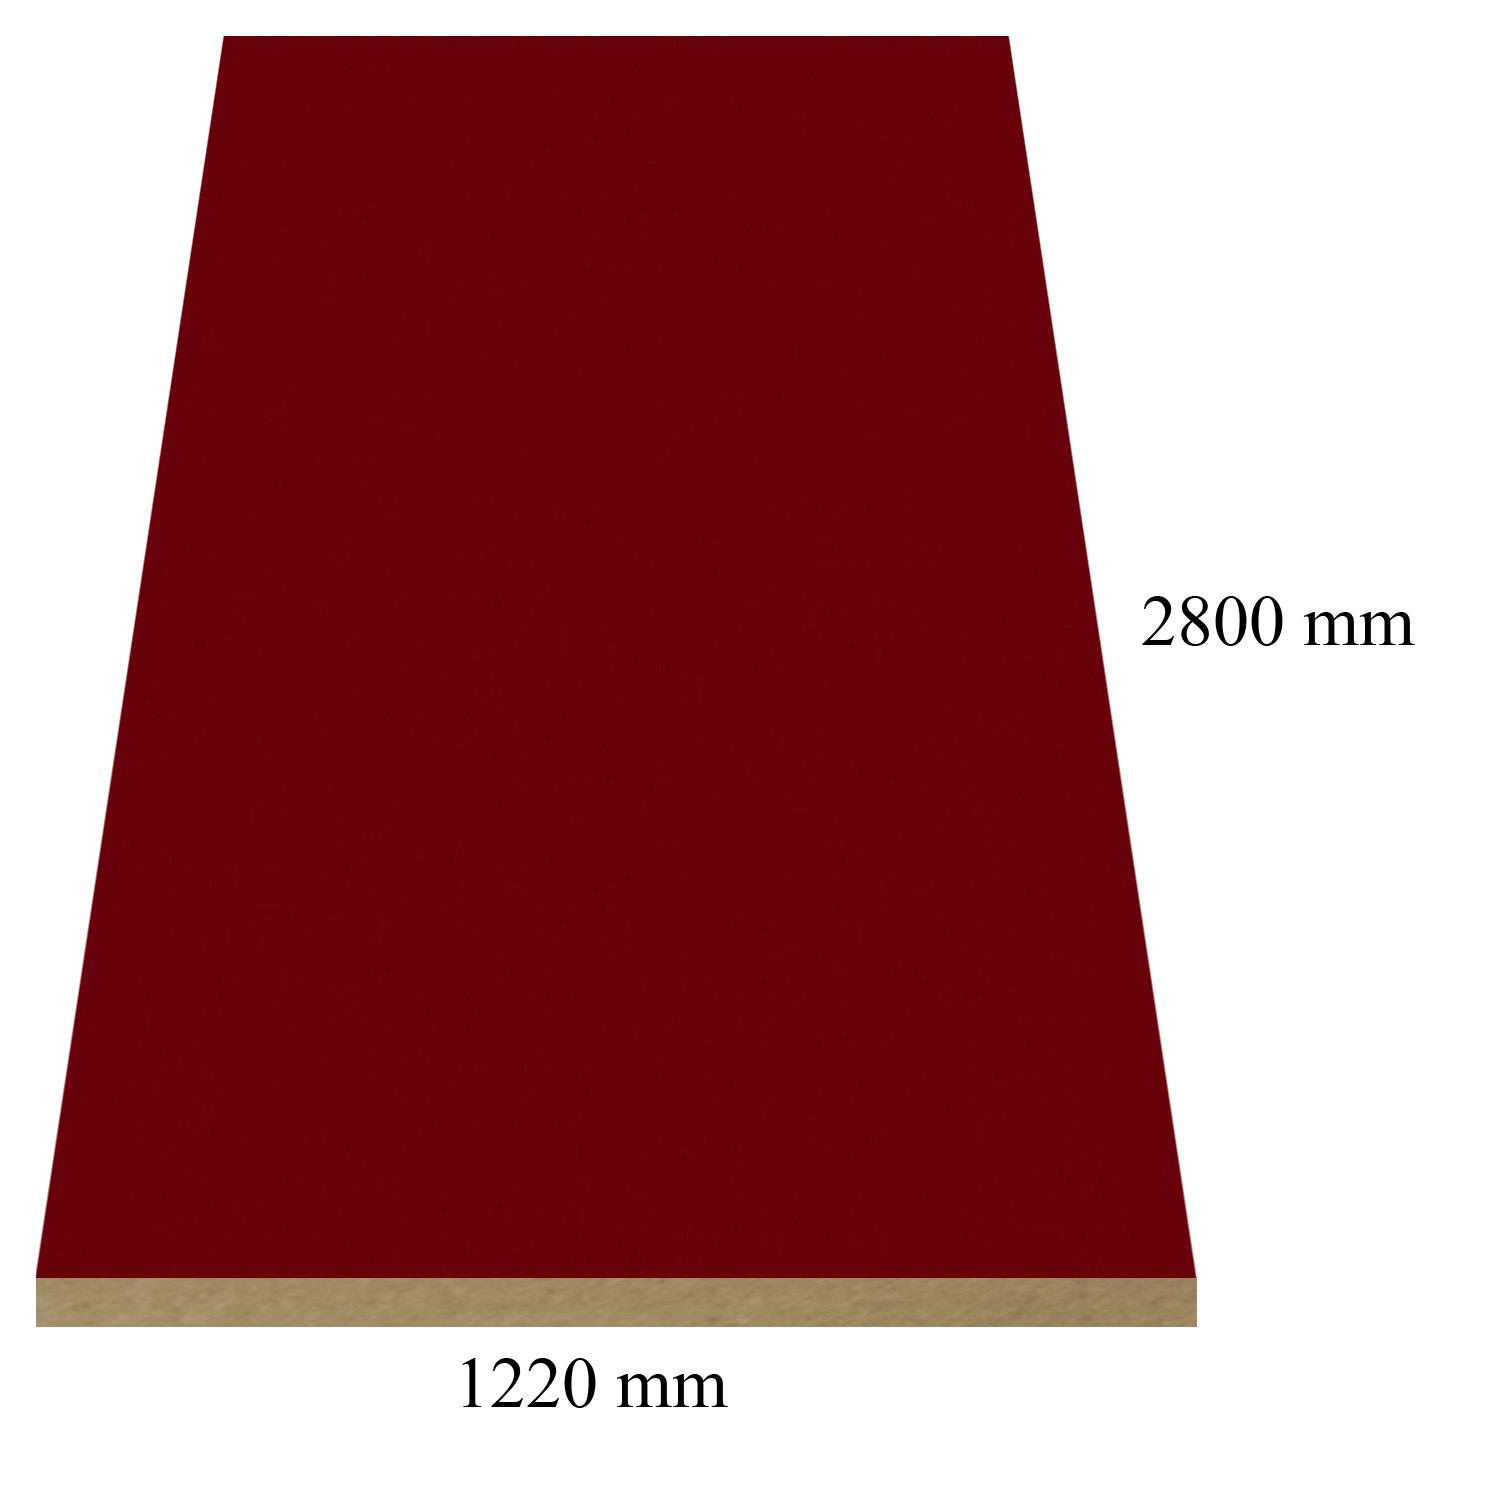 146 Bordeaux high gloss - PVC coated 18 mm MDF